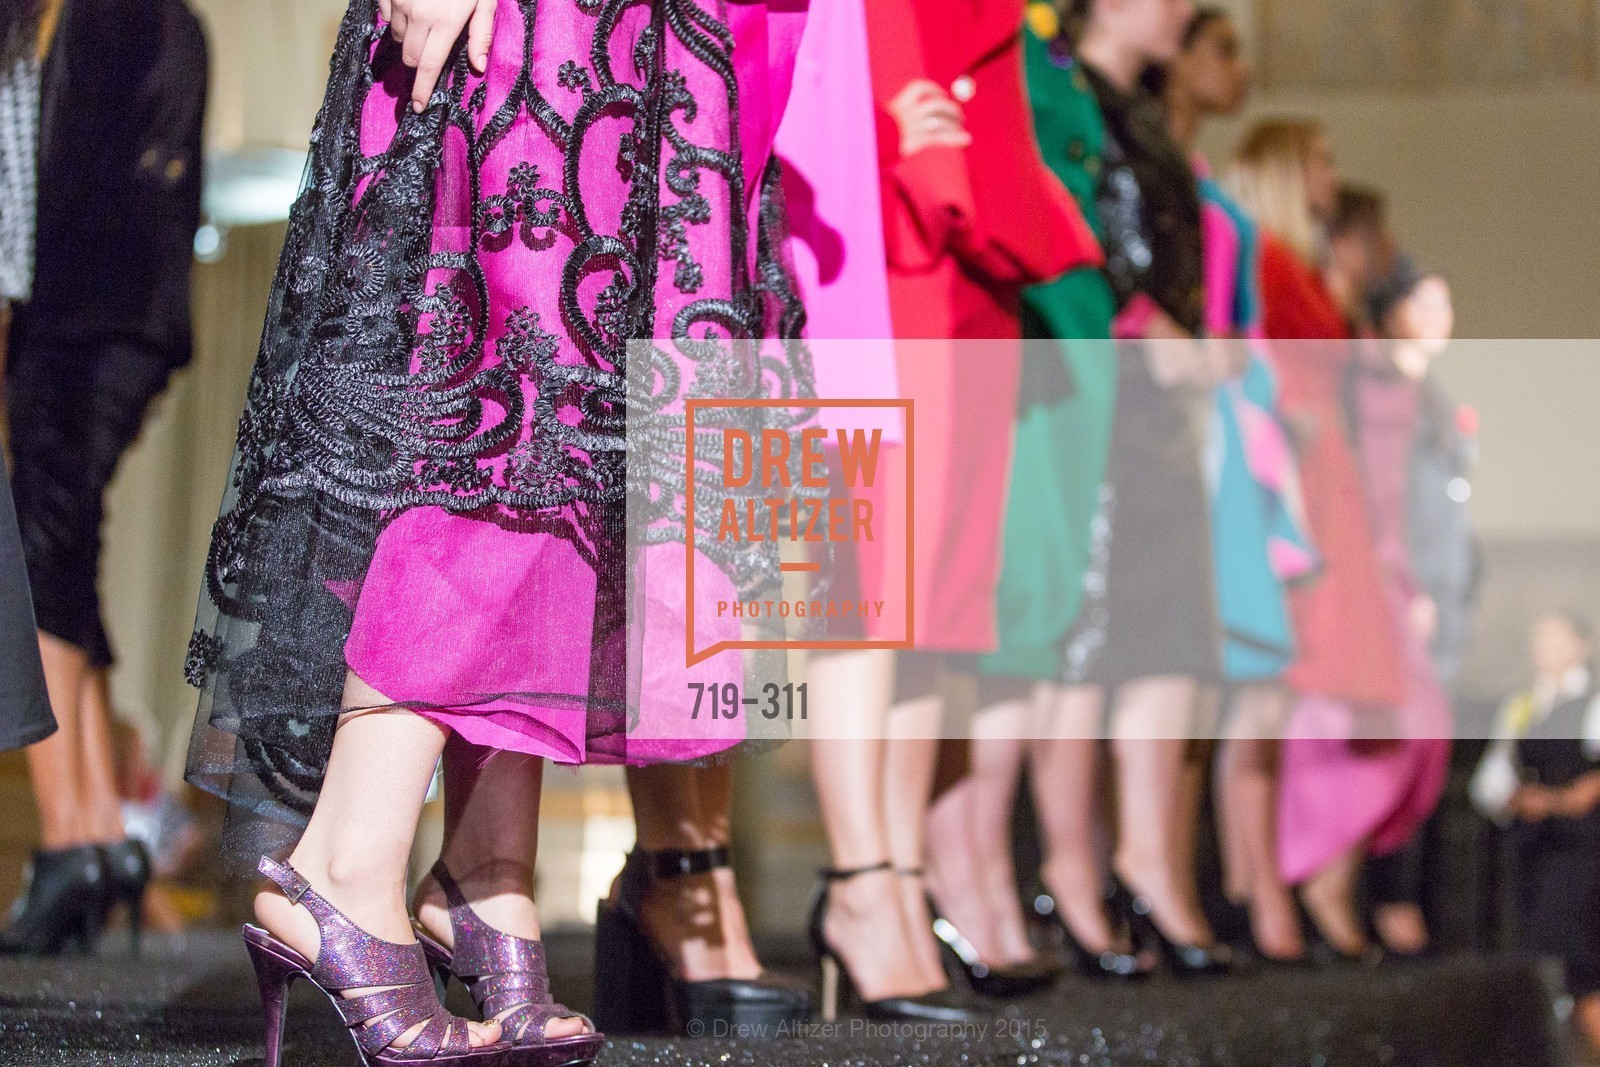 Runway, Metropolitan Club/Centennial Fashion Show, September 24th, 2015, Photo,Drew Altizer, Drew Altizer Photography, full-service event agency, private events, San Francisco photographer, photographer California